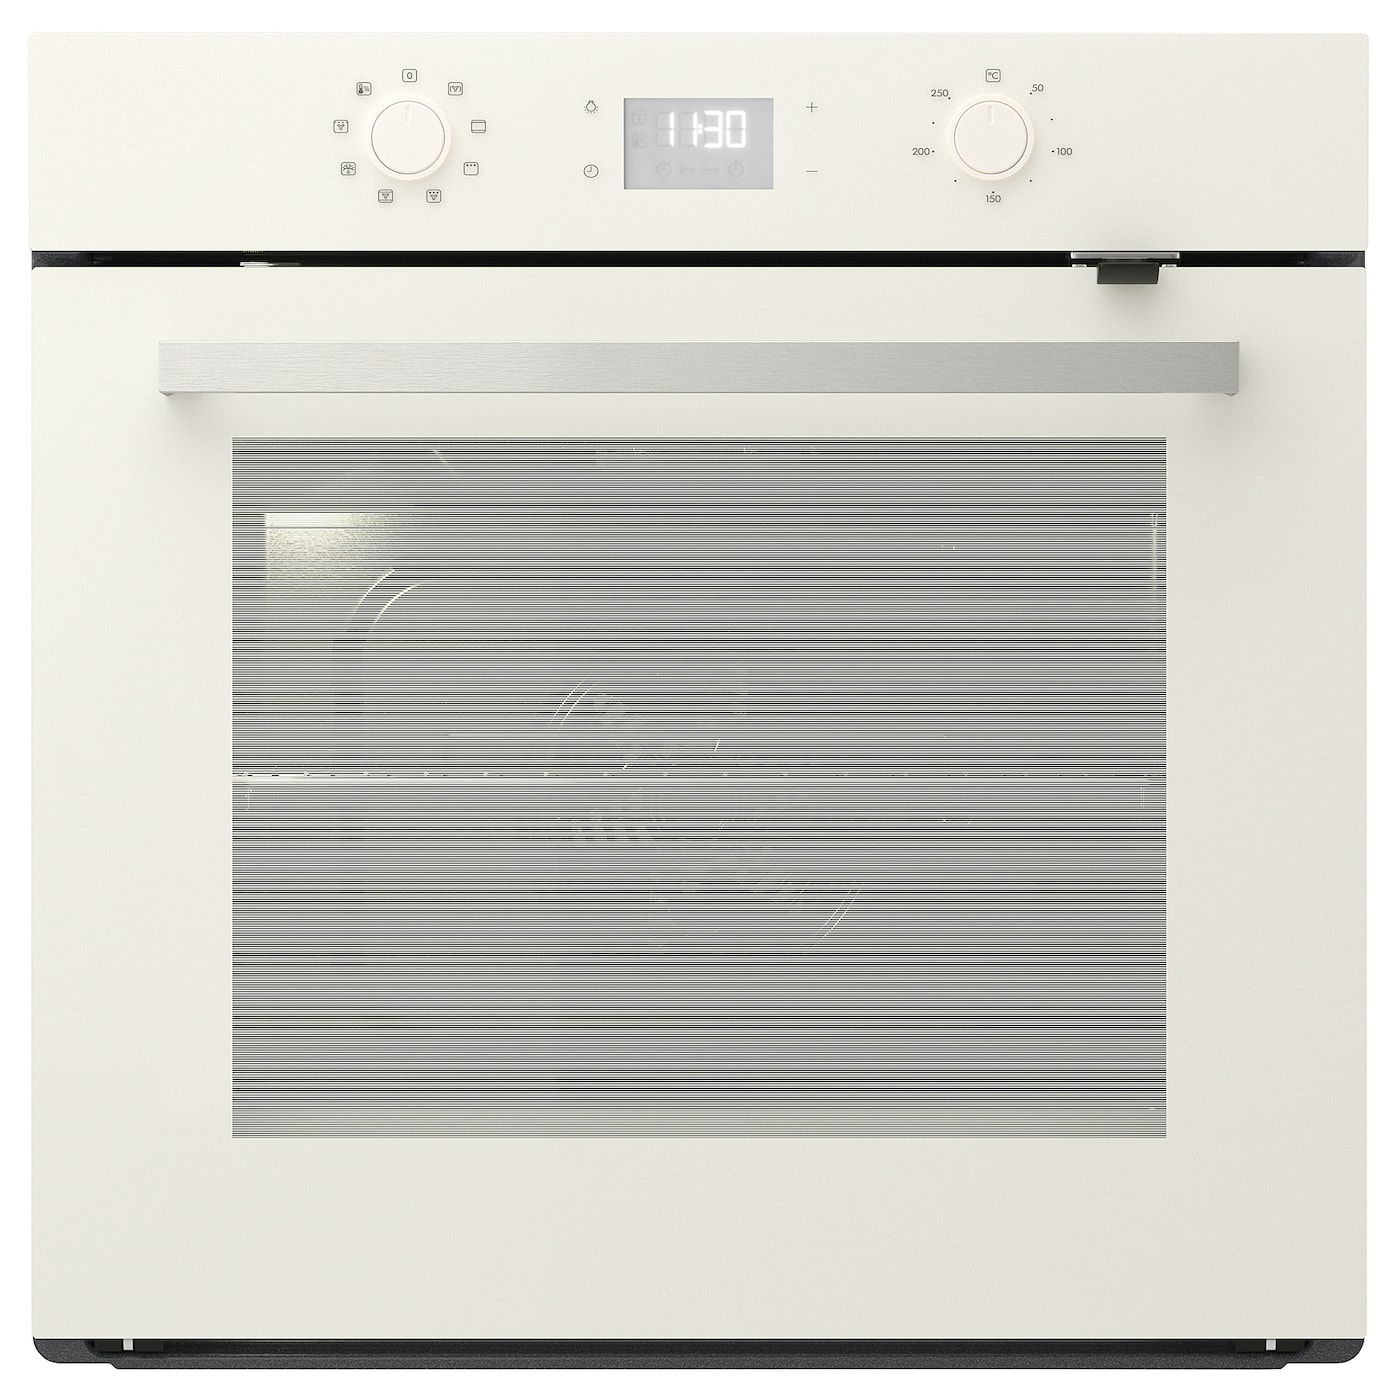 IKEA BEJUBLAD forced air oven 5 year guarantee. Read about the terms in the guarantee brochure.